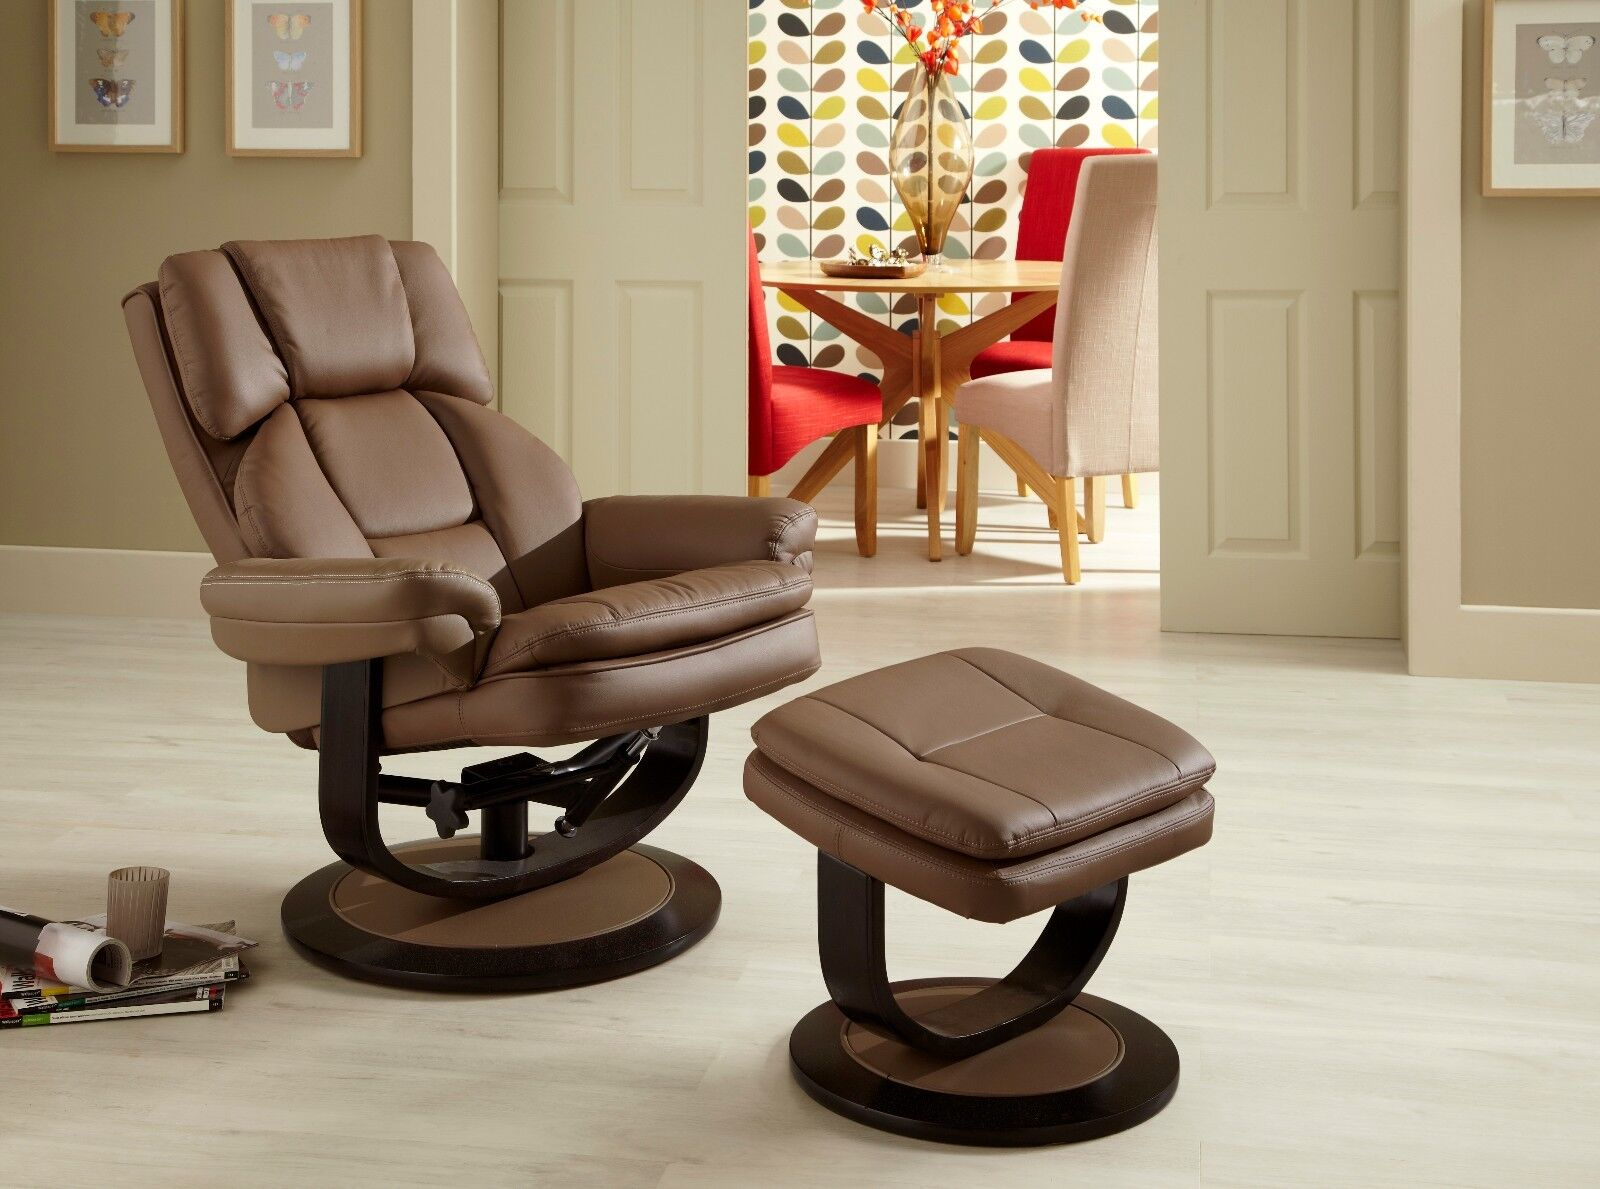 Upton Recliner Chair Swivel Faux Leather Comfort FREE Footstool Various Colours